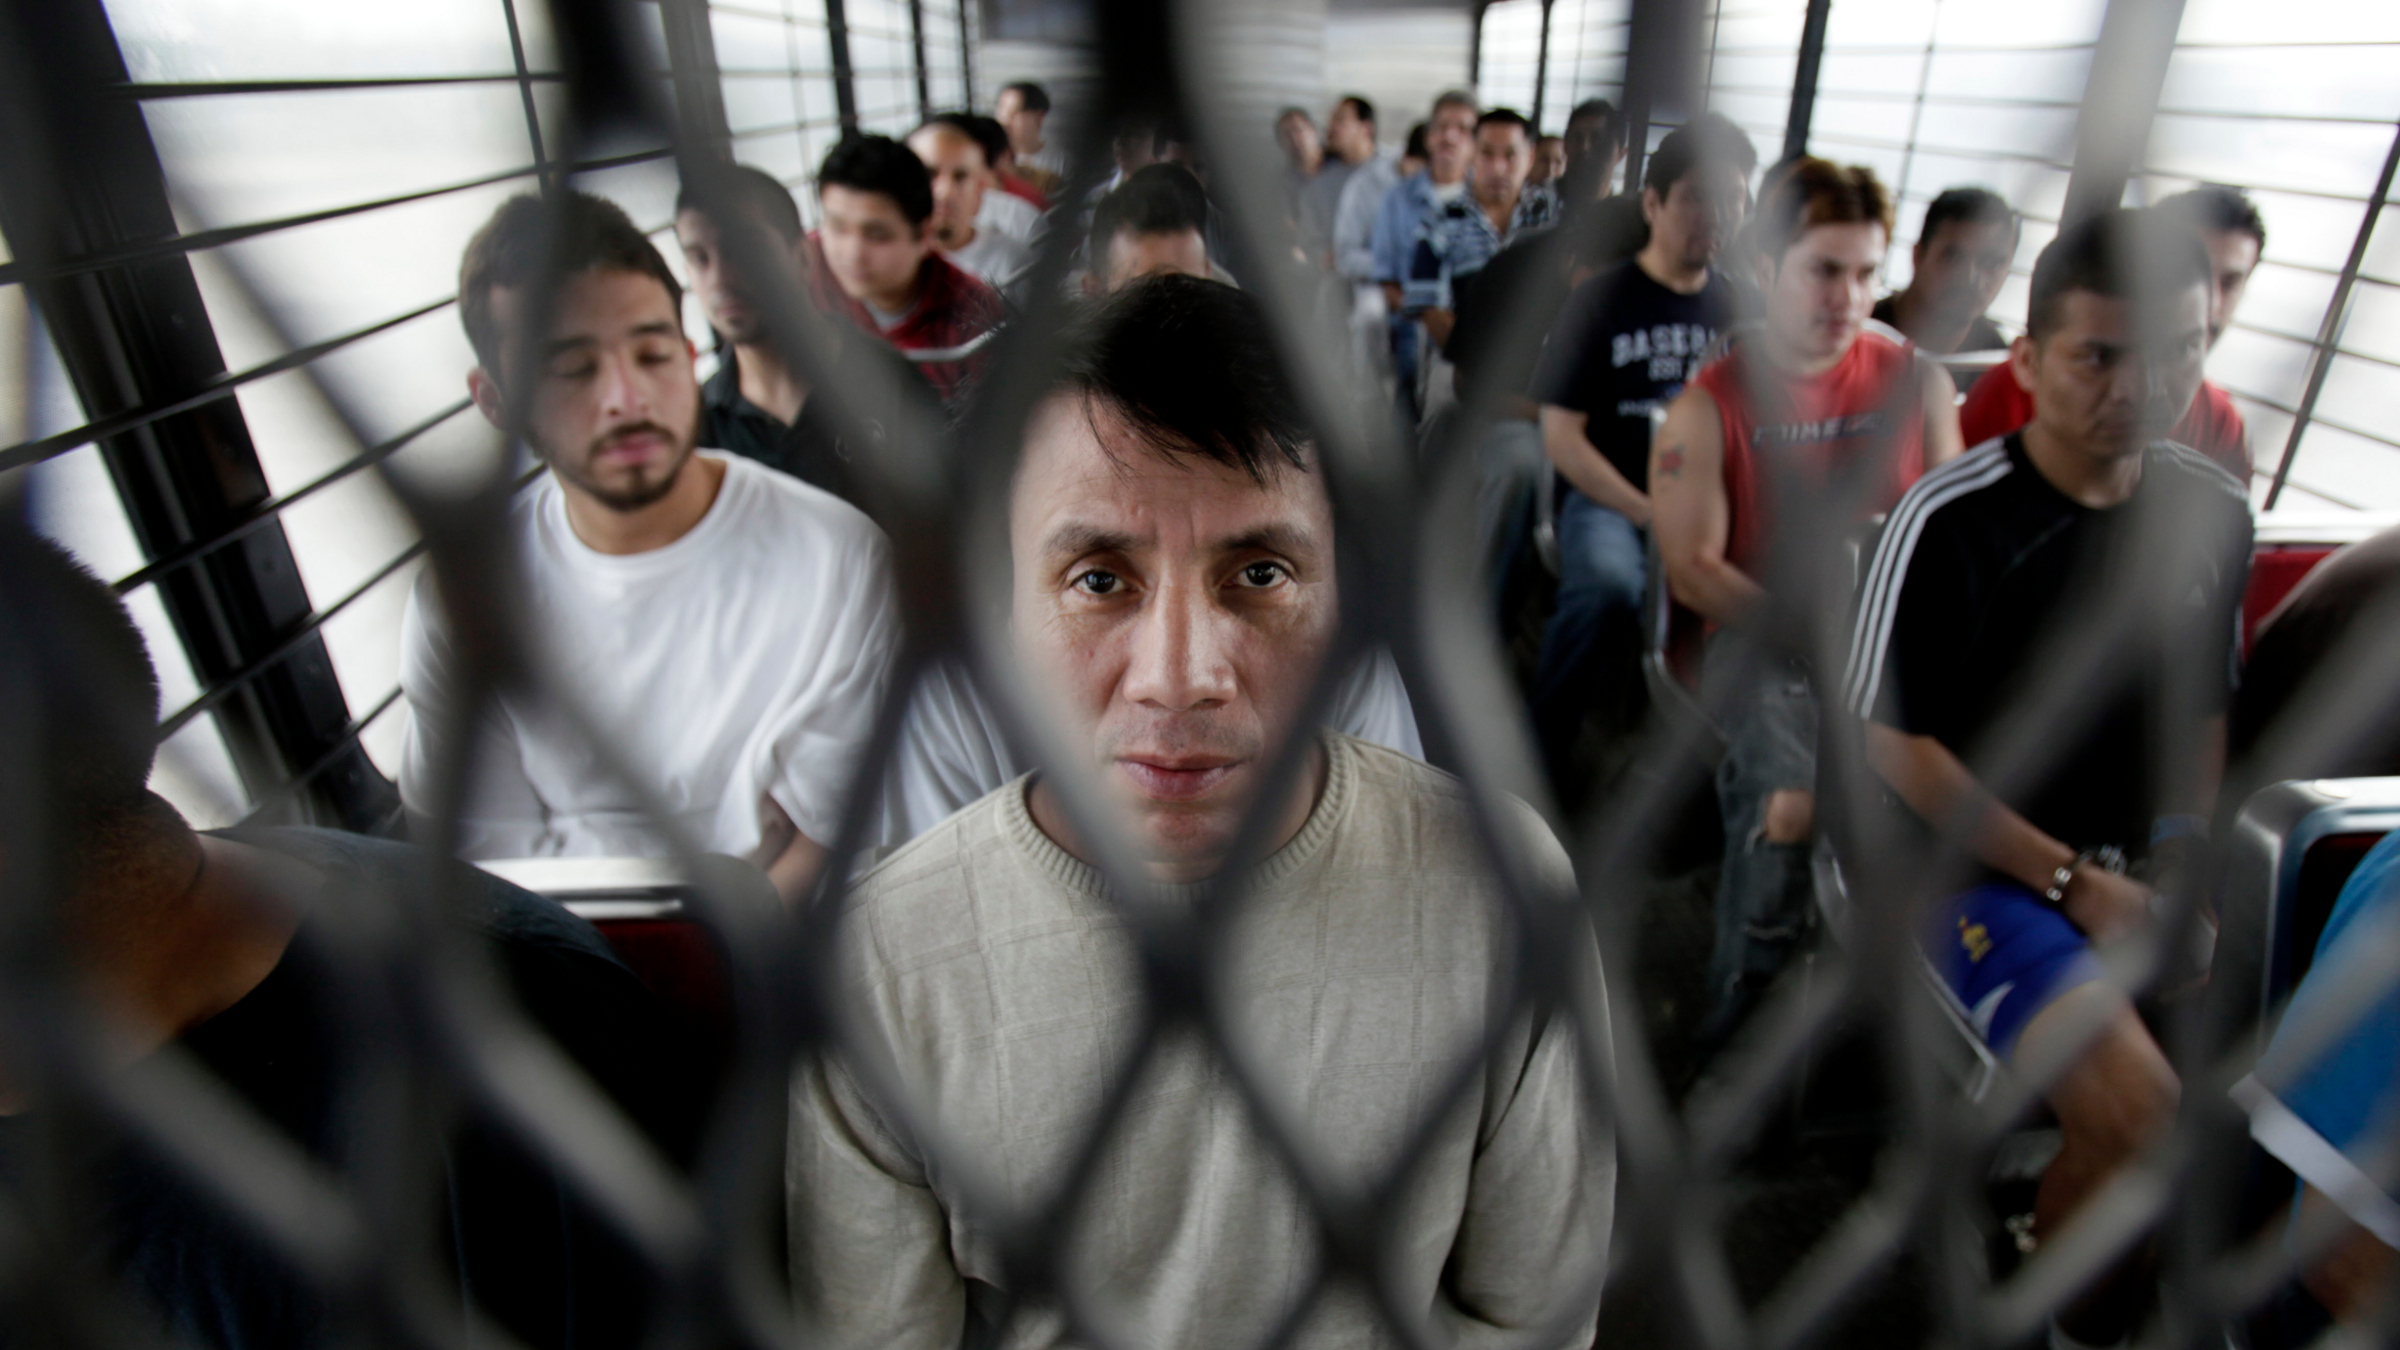 Mexican immigrant Bernardo Ortega Guerrero sits on a deportation buss in Texas in Chicago, Il., Wednesday, May 26, 2010.